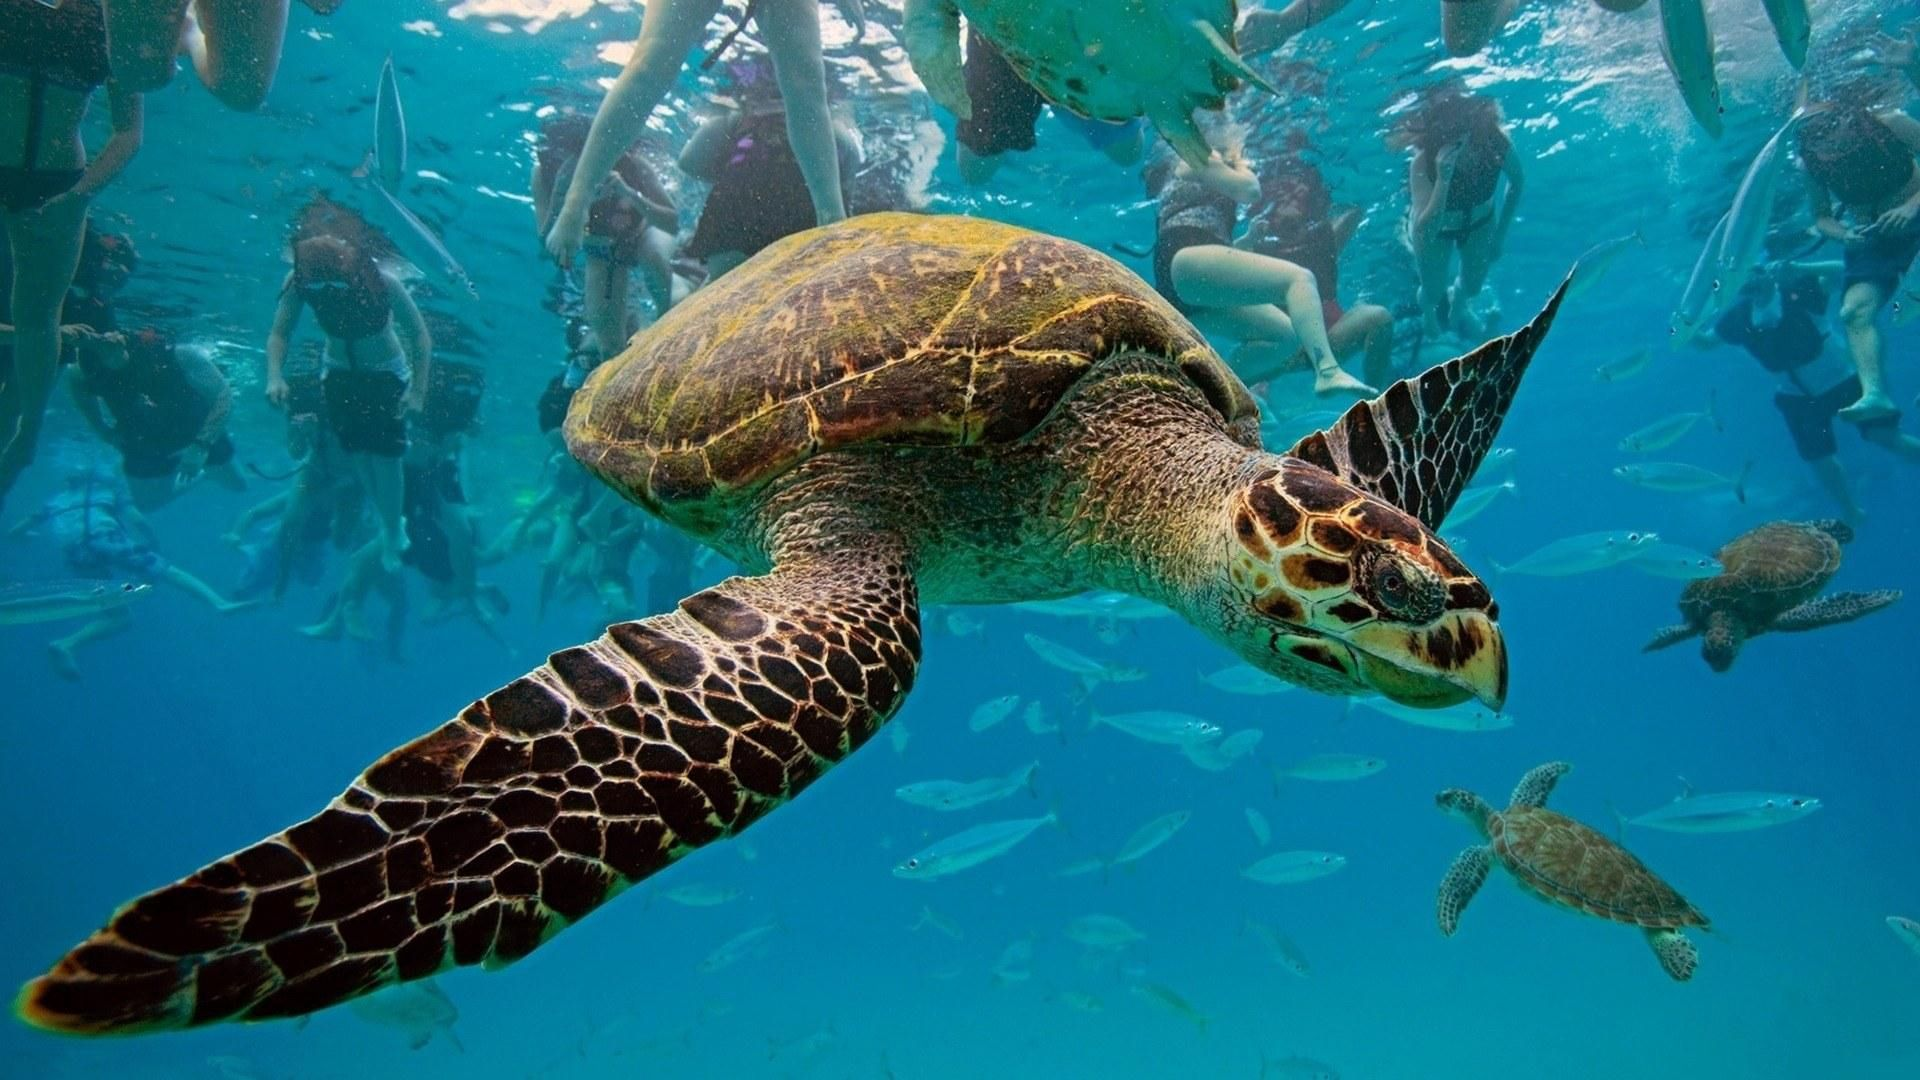 113161 download wallpaper Animals, Turtles, Underwater World, To Swim, Swim screensavers and pictures for free